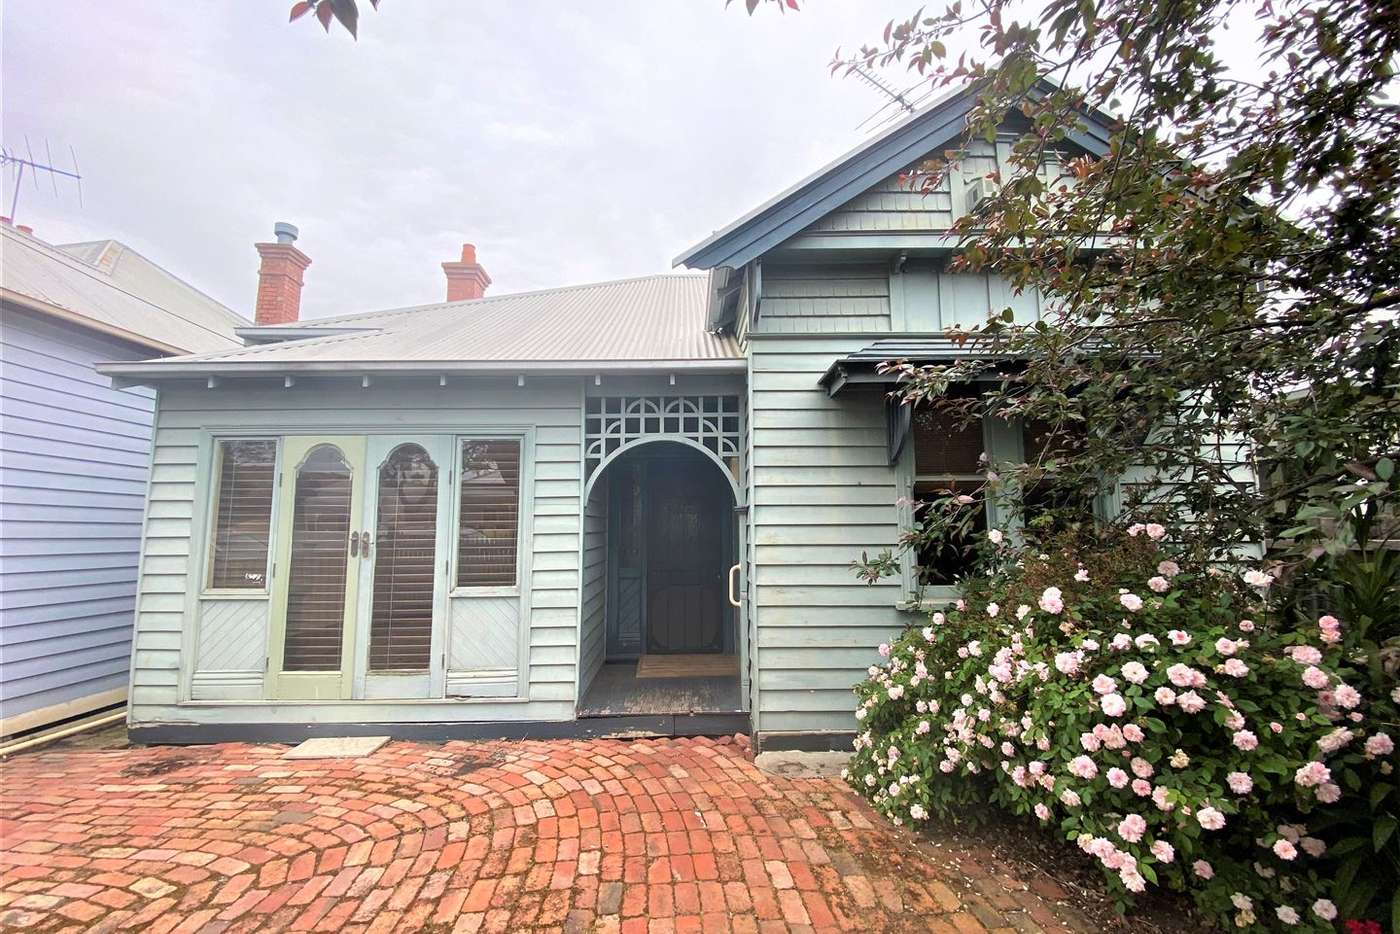 Main view of Homely house listing, 8 Brownbill Street, Geelong VIC 3220